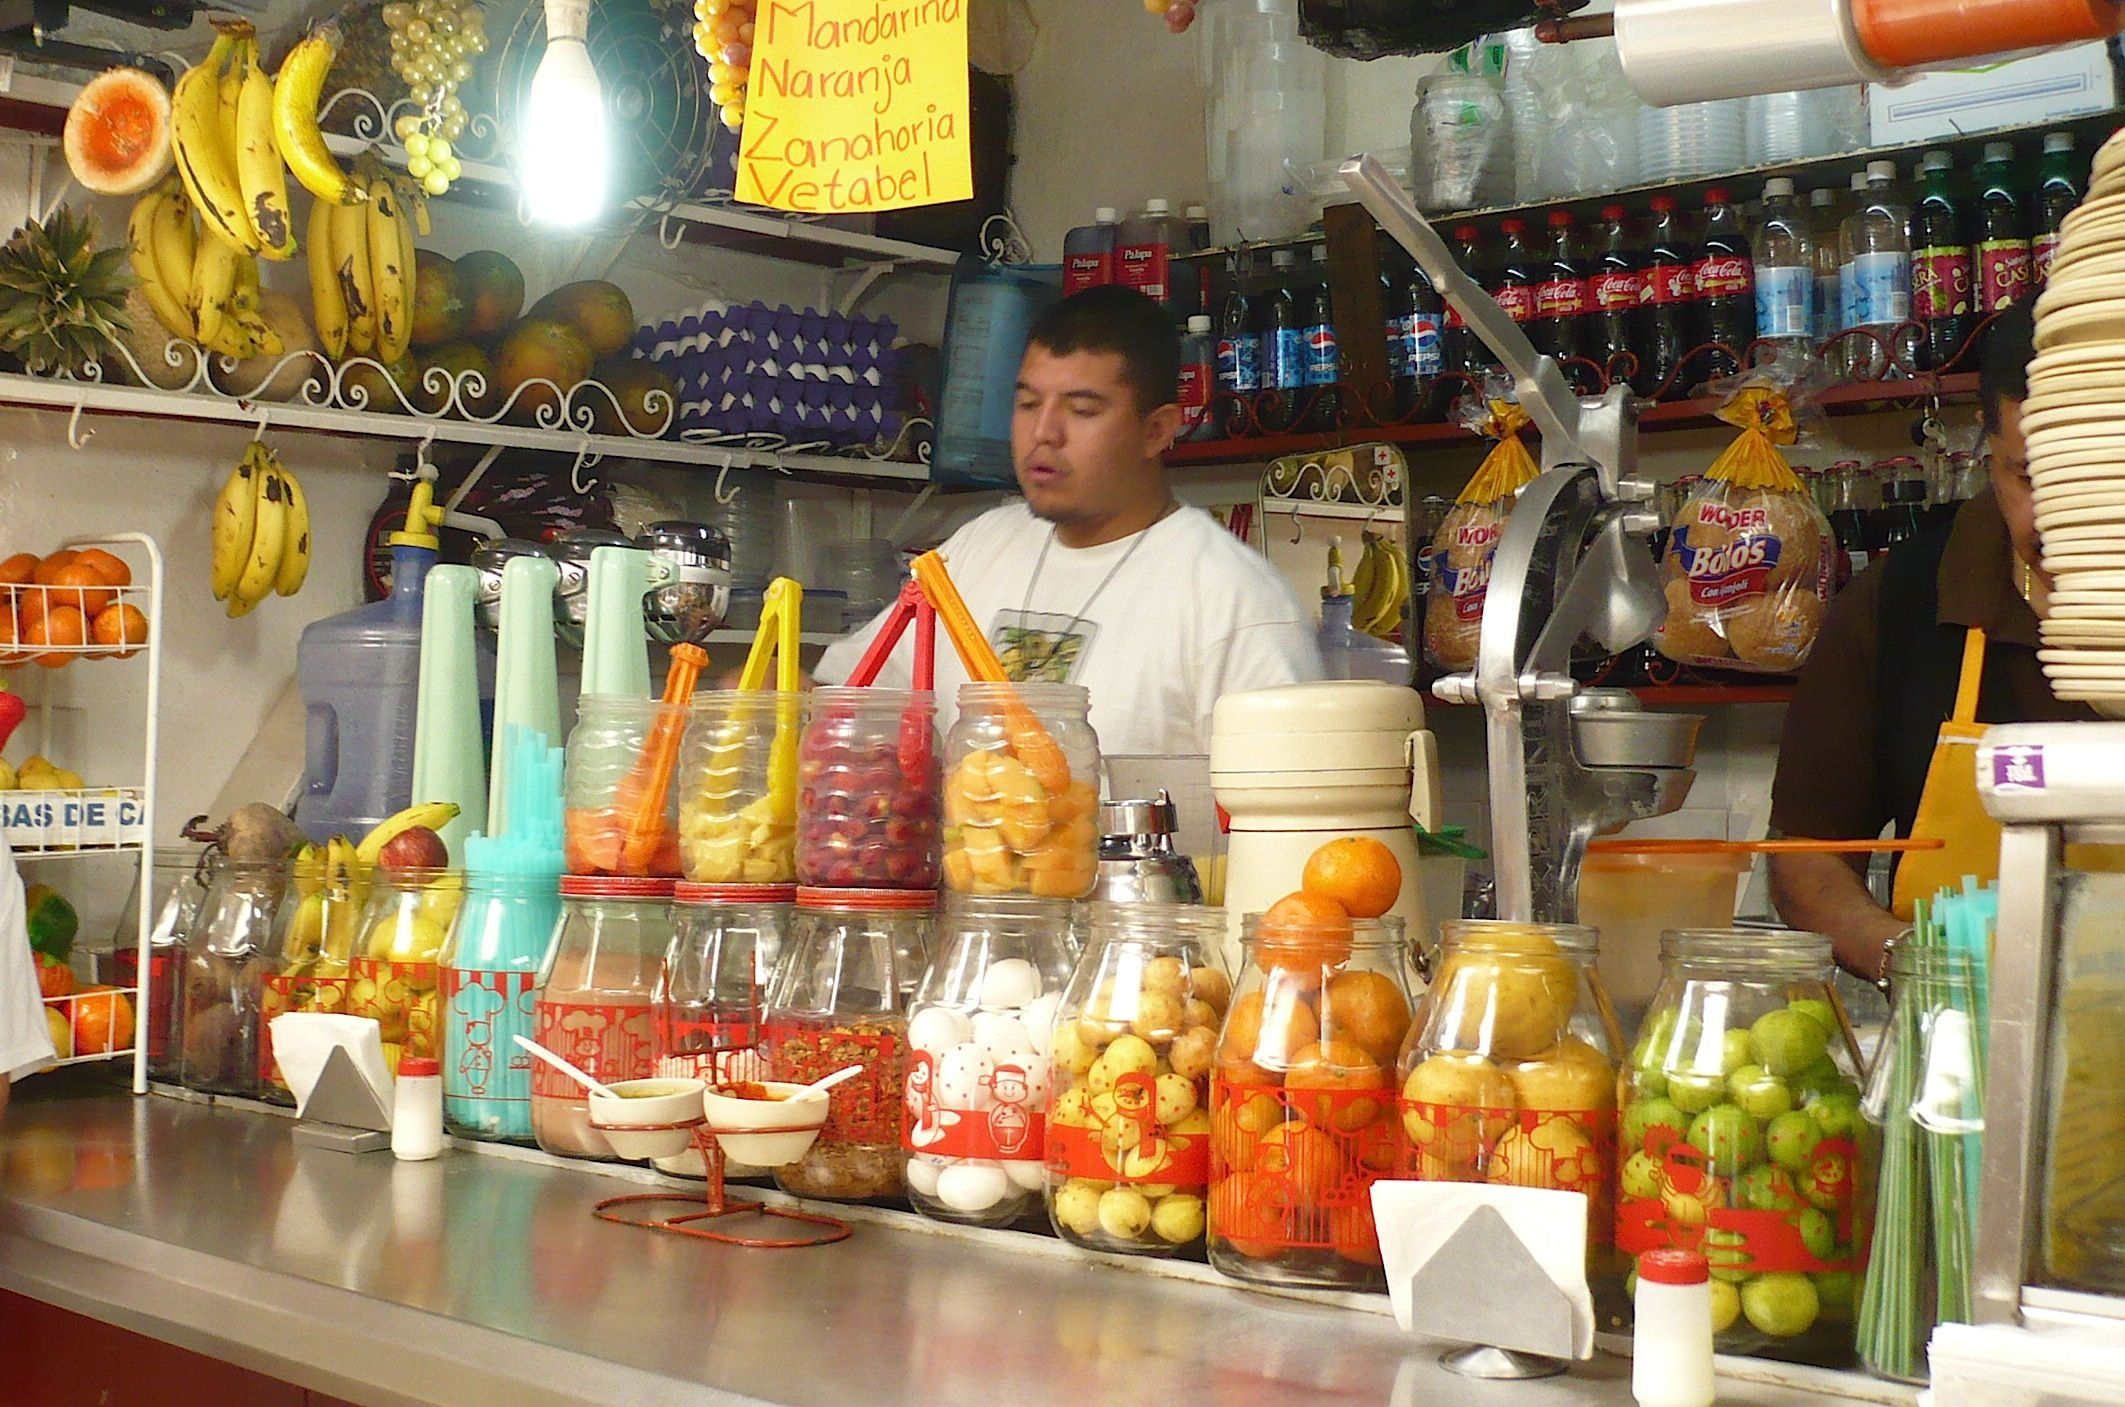 eating at mexican markets - Buscar con Google